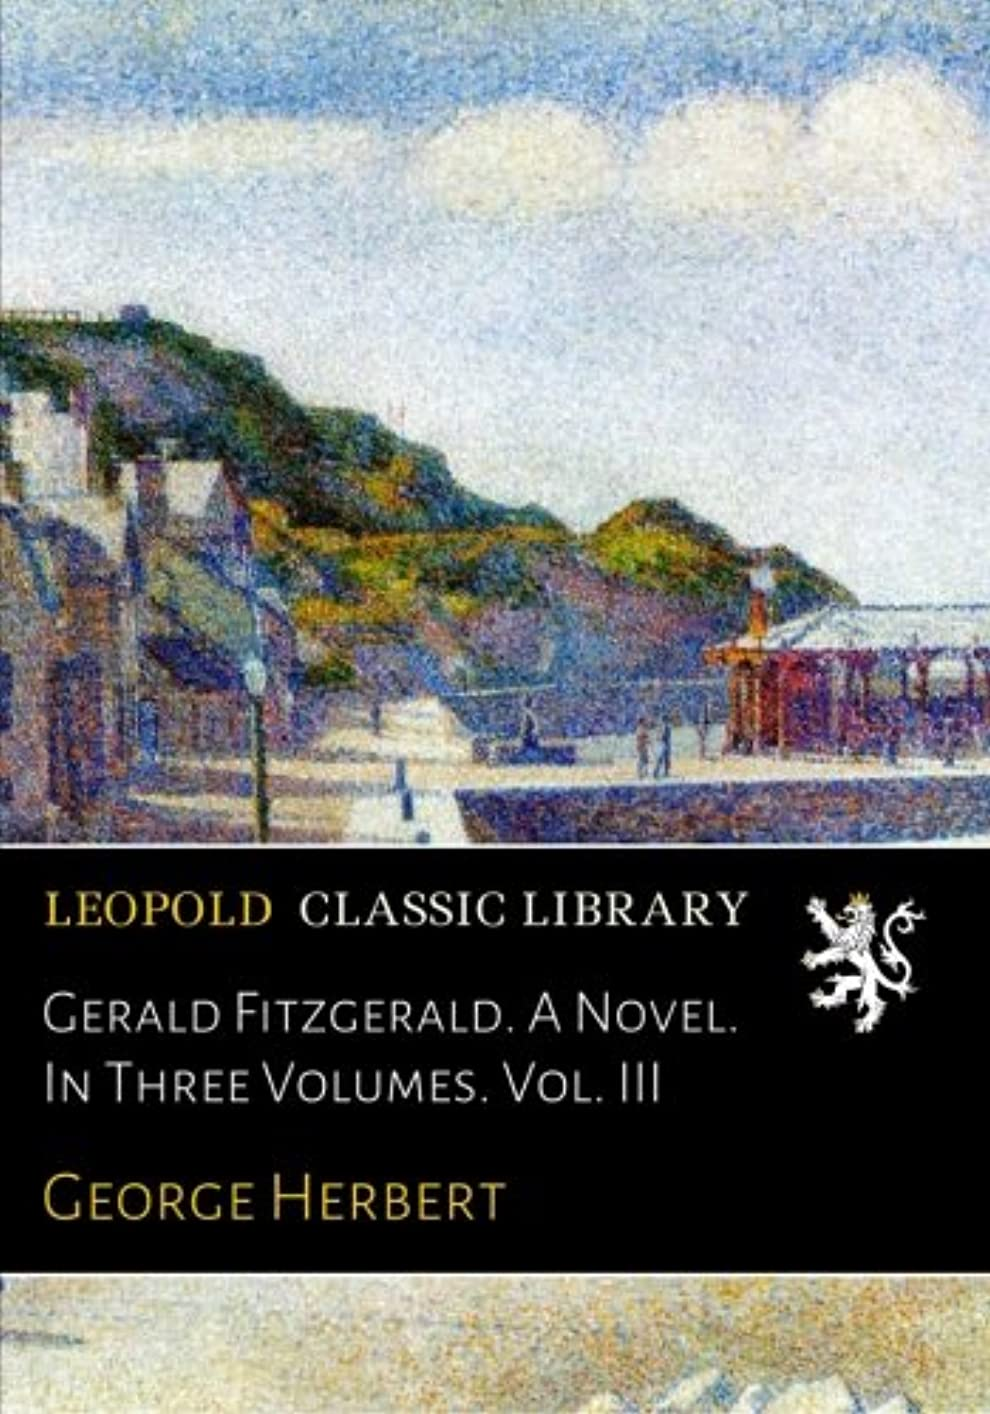 特性メイトカップルGerald Fitzgerald. A Novel. In Three Volumes. Vol. III